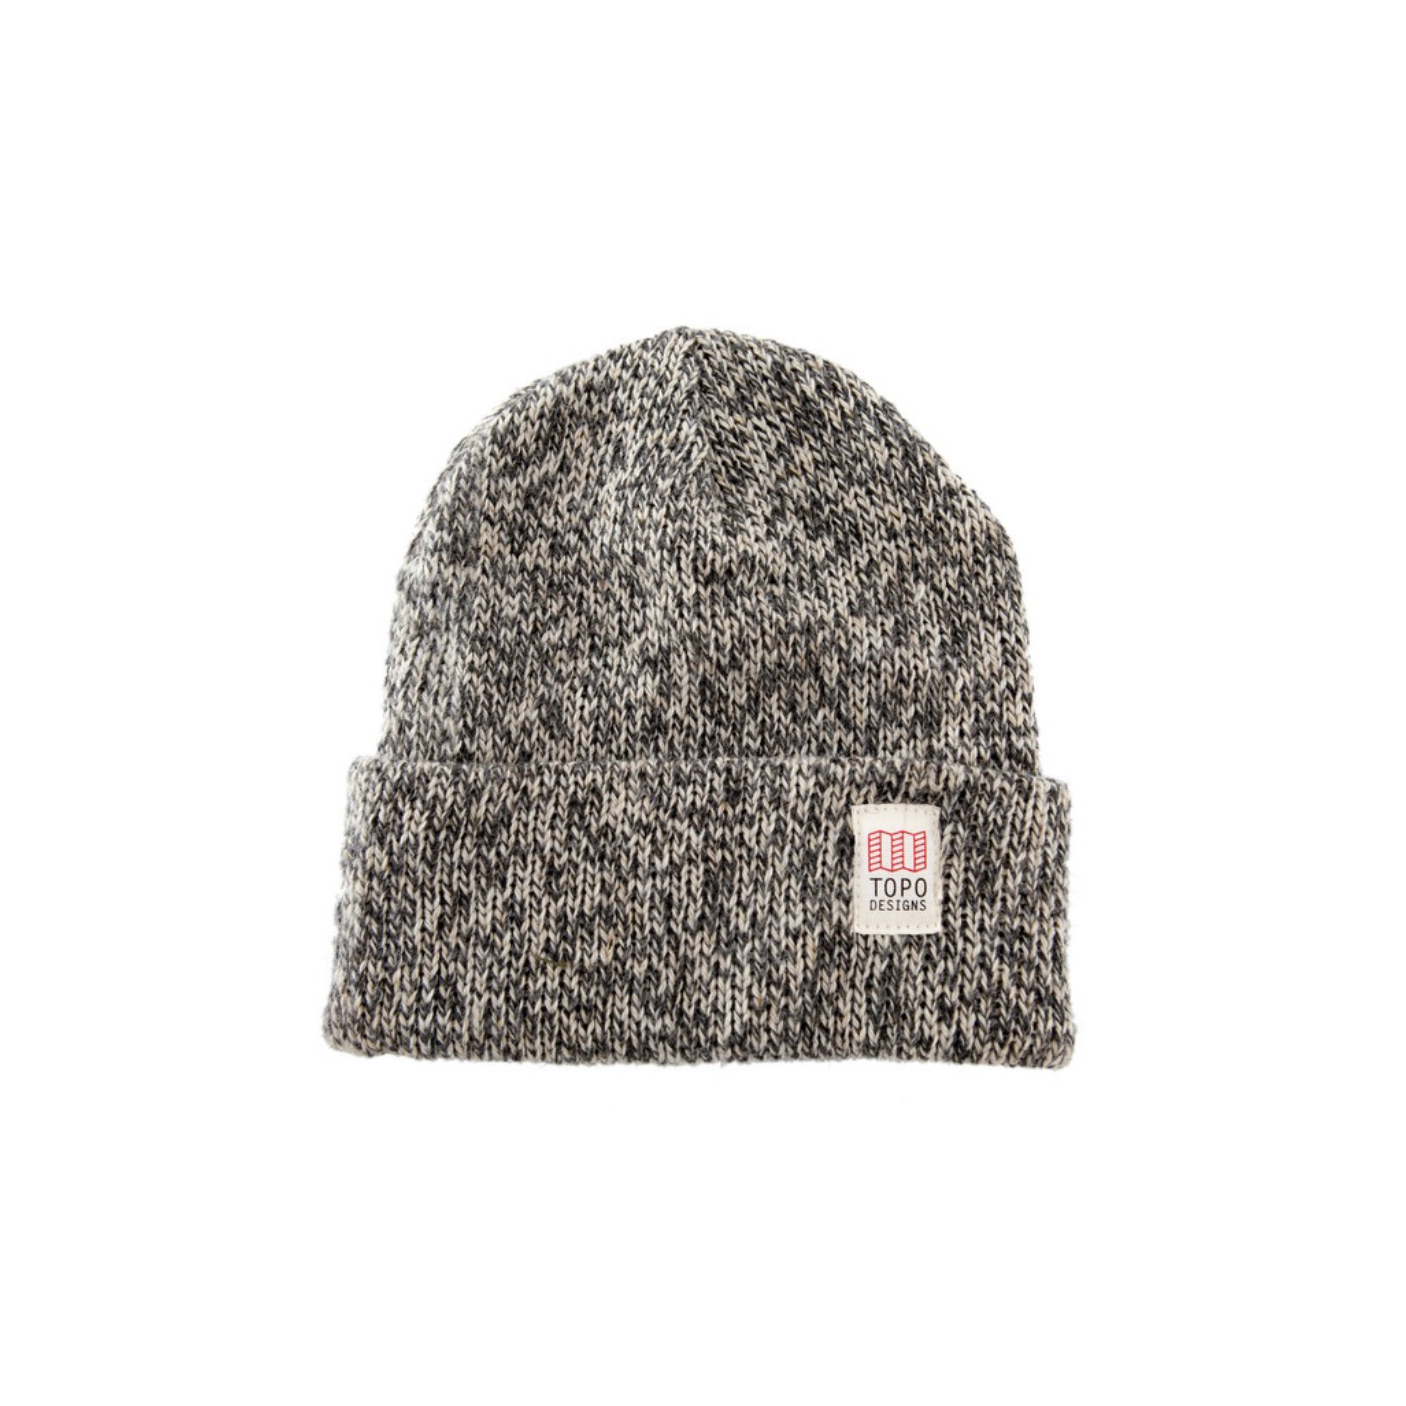 RAGG WOOL CAP  : $32   PERFECT FOR : Anyone with a head. Choice of two colors, and it's made in Colorado so you know it's warm.   Topo Designs